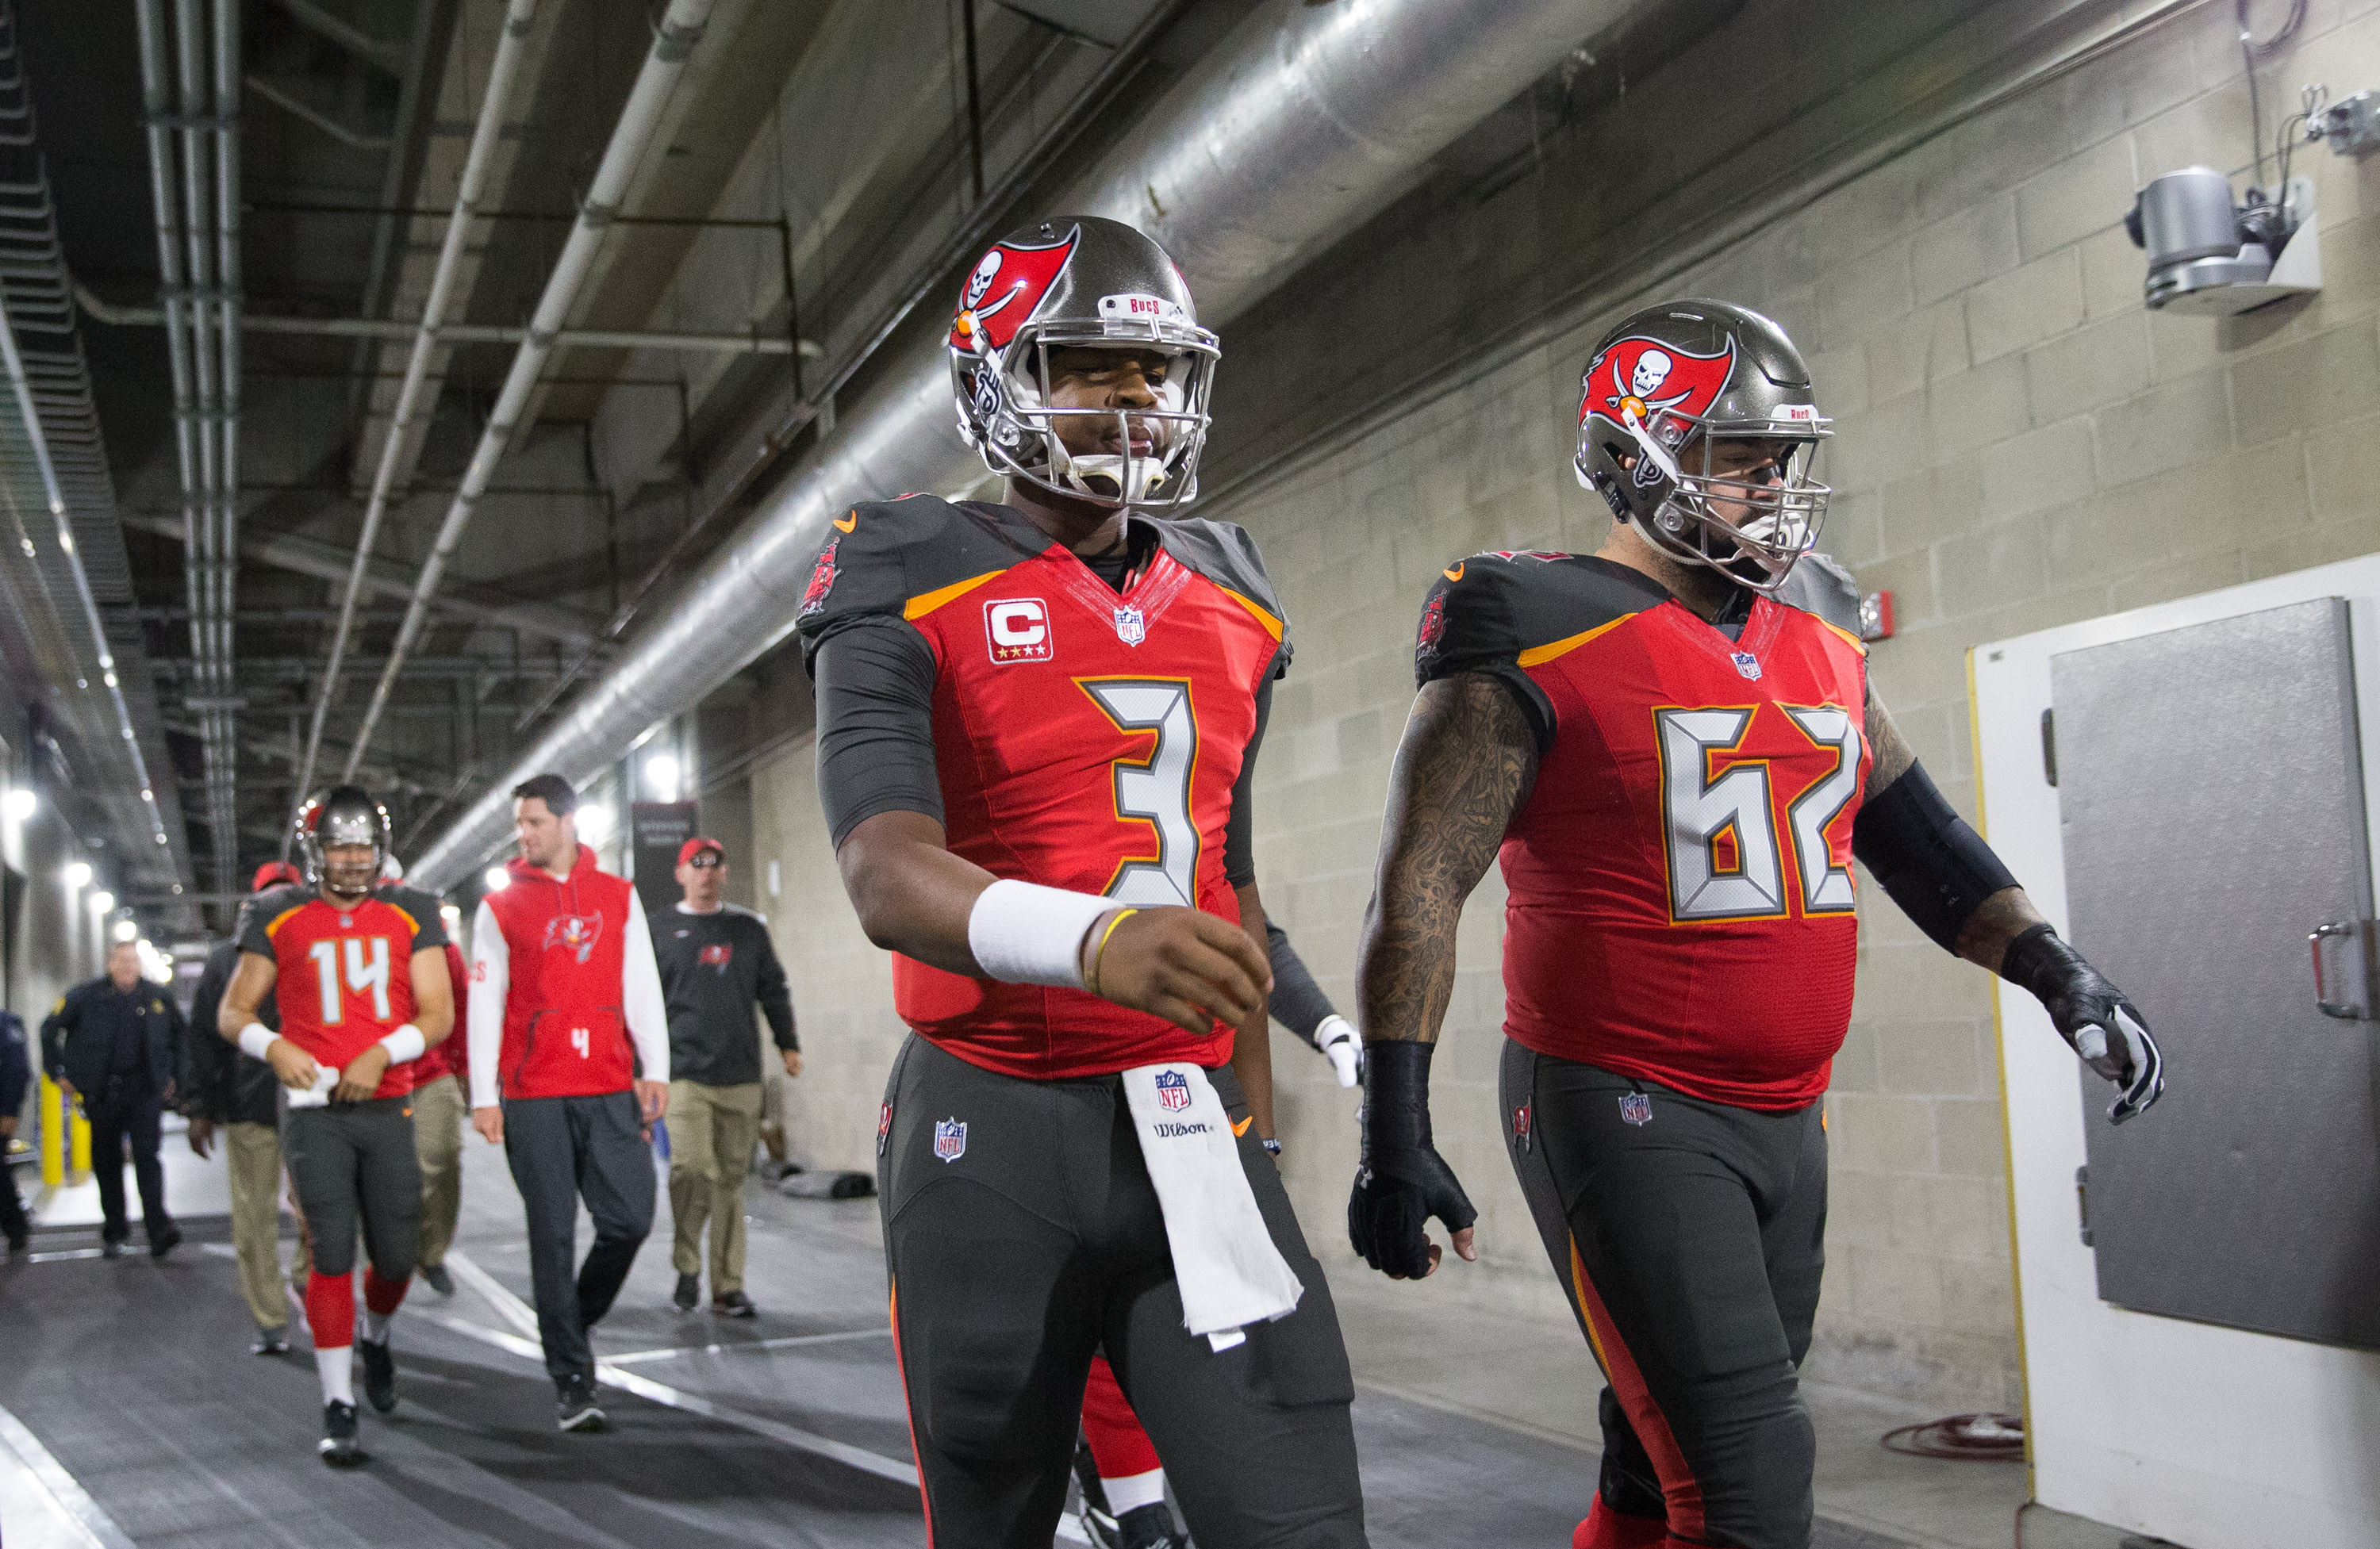 release date 8bbc9 0da15 Bucs uniform ranked 32nd among NFL teams, because there isn ...